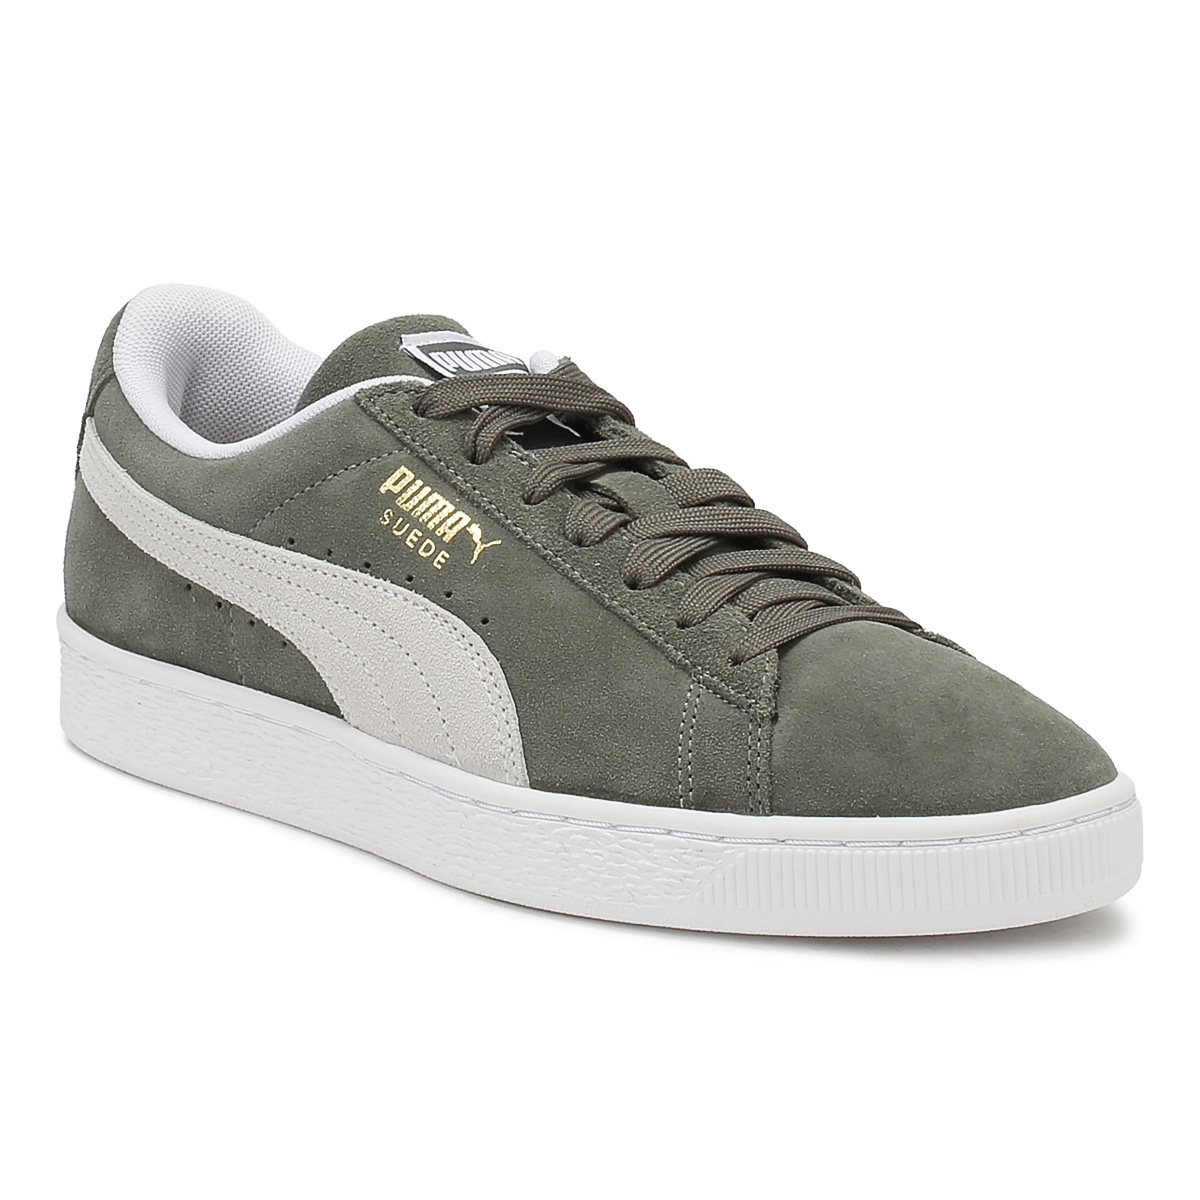 PUMA  Uomo Up Classic Trainers Castor Grau Suede Lace Up Uomo Casual Schuhes 56eb87